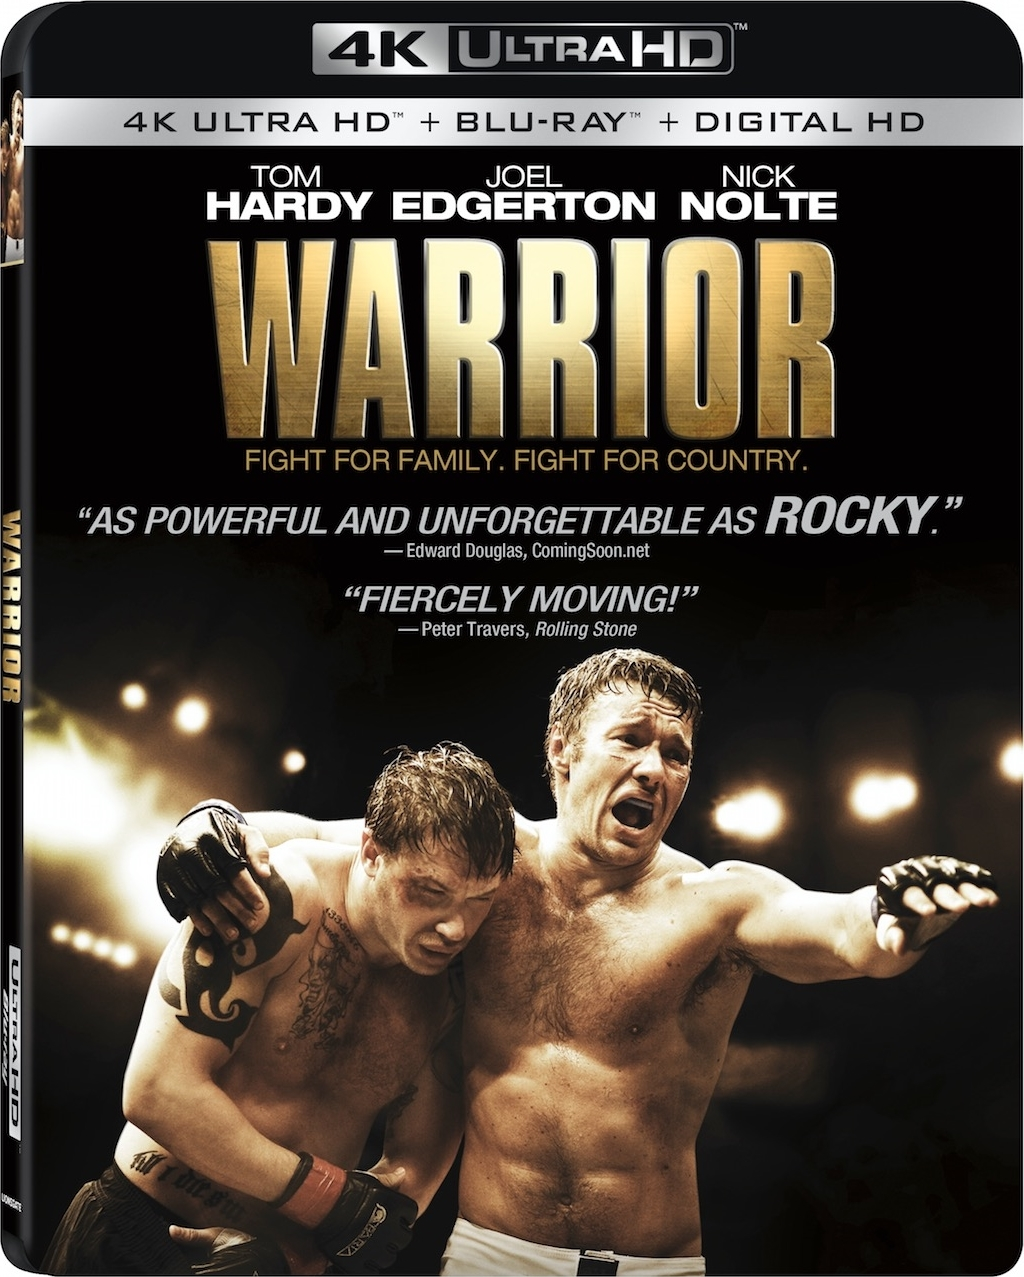 Warrior 4K (2011) Ultra HD Blu-ray